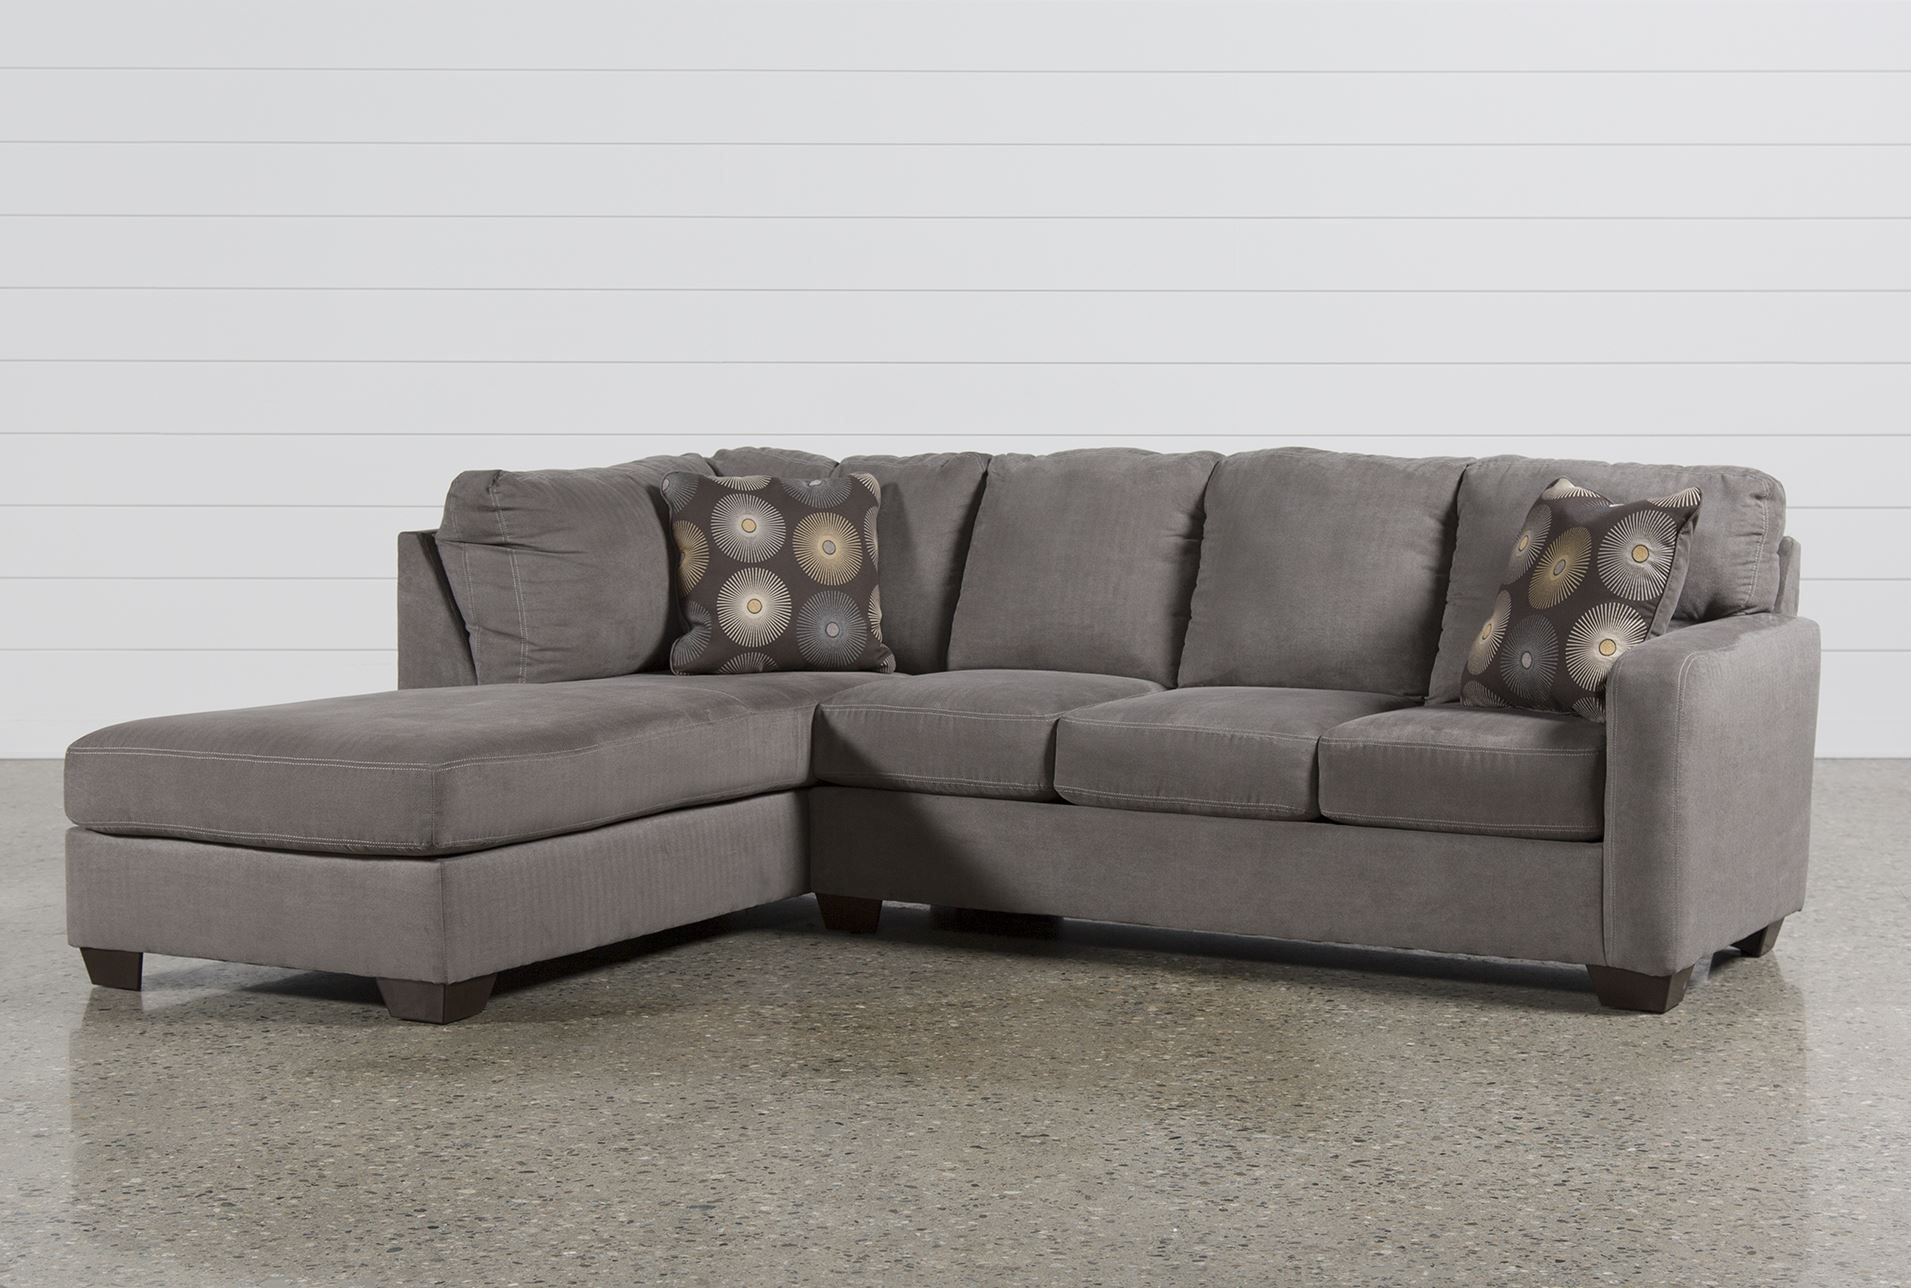 Zella Charcoal 2 Piece Sectional W/laf Chaise - Signature pertaining to Aspen 2 Piece Sleeper Sectionals With Laf Chaise (Image 30 of 30)